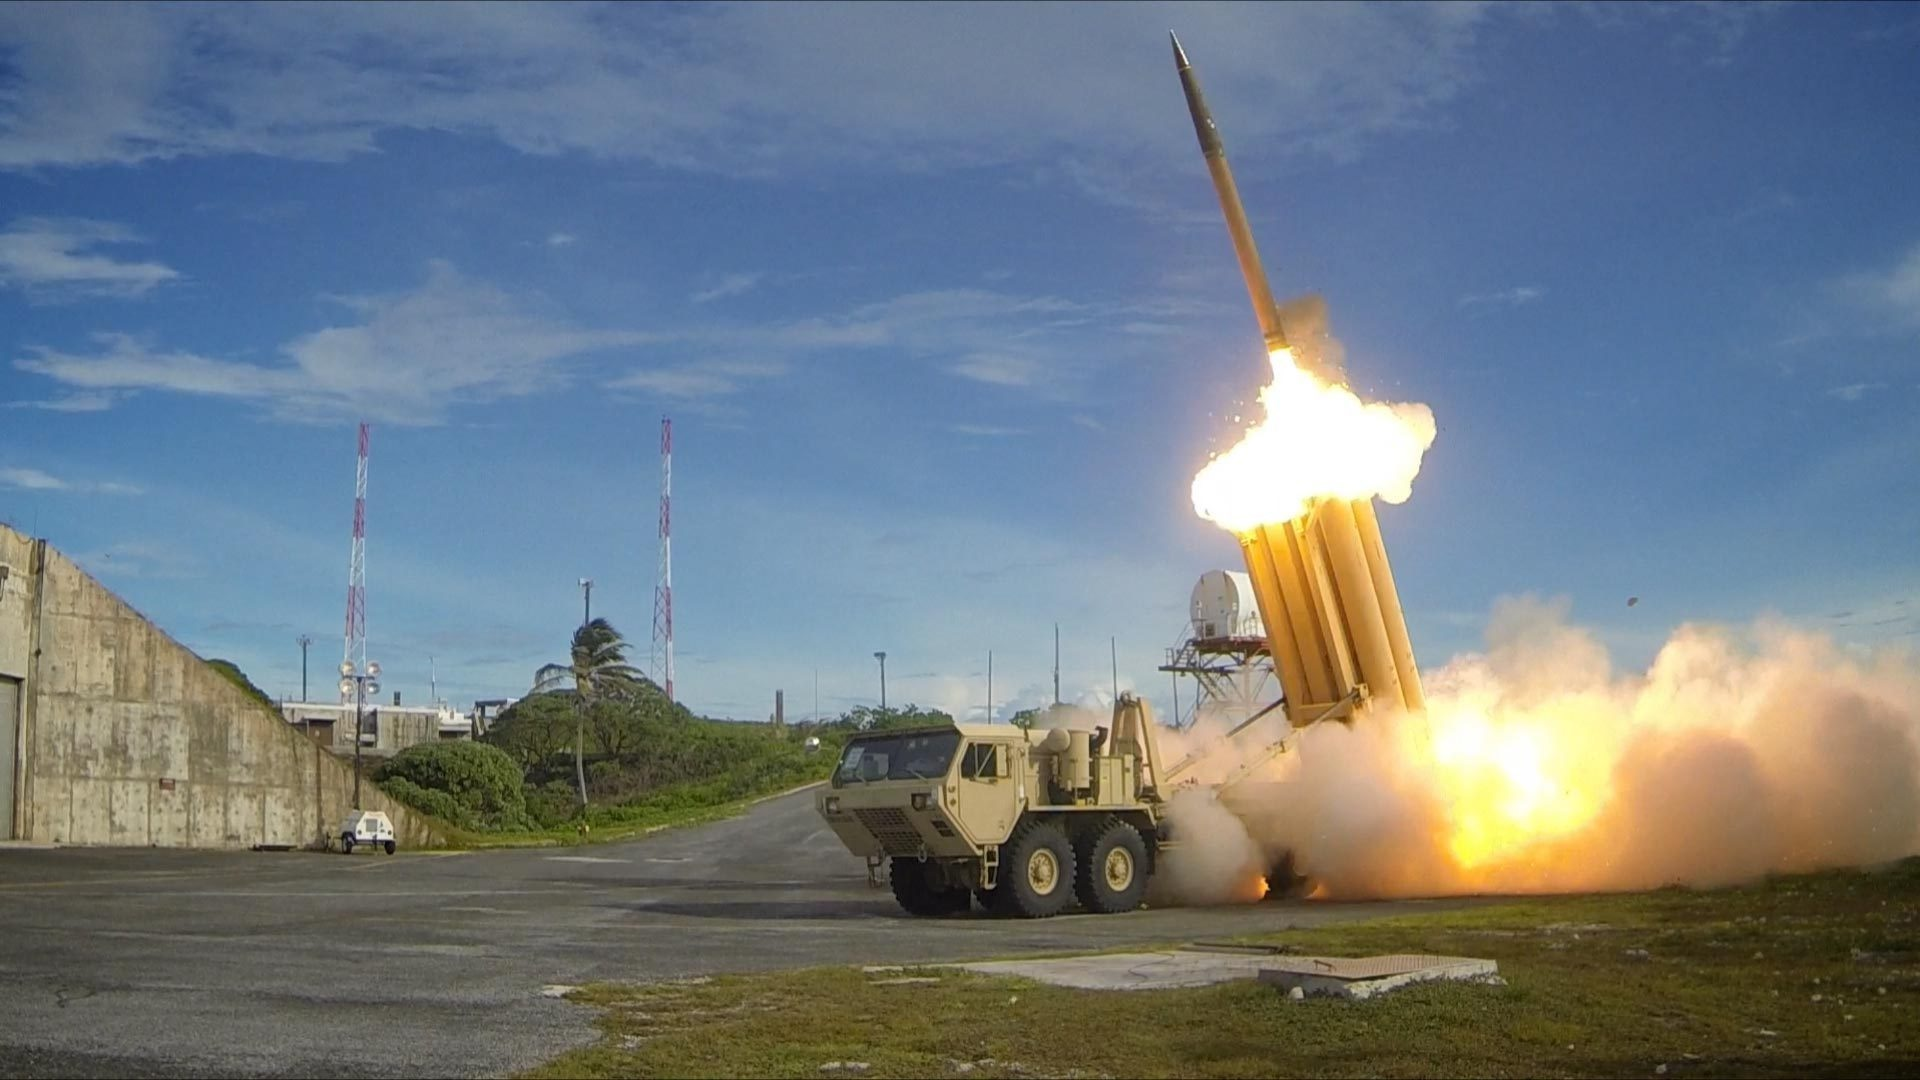 Terminal High Altitude Area Defense (THAAD) interceptor being fired